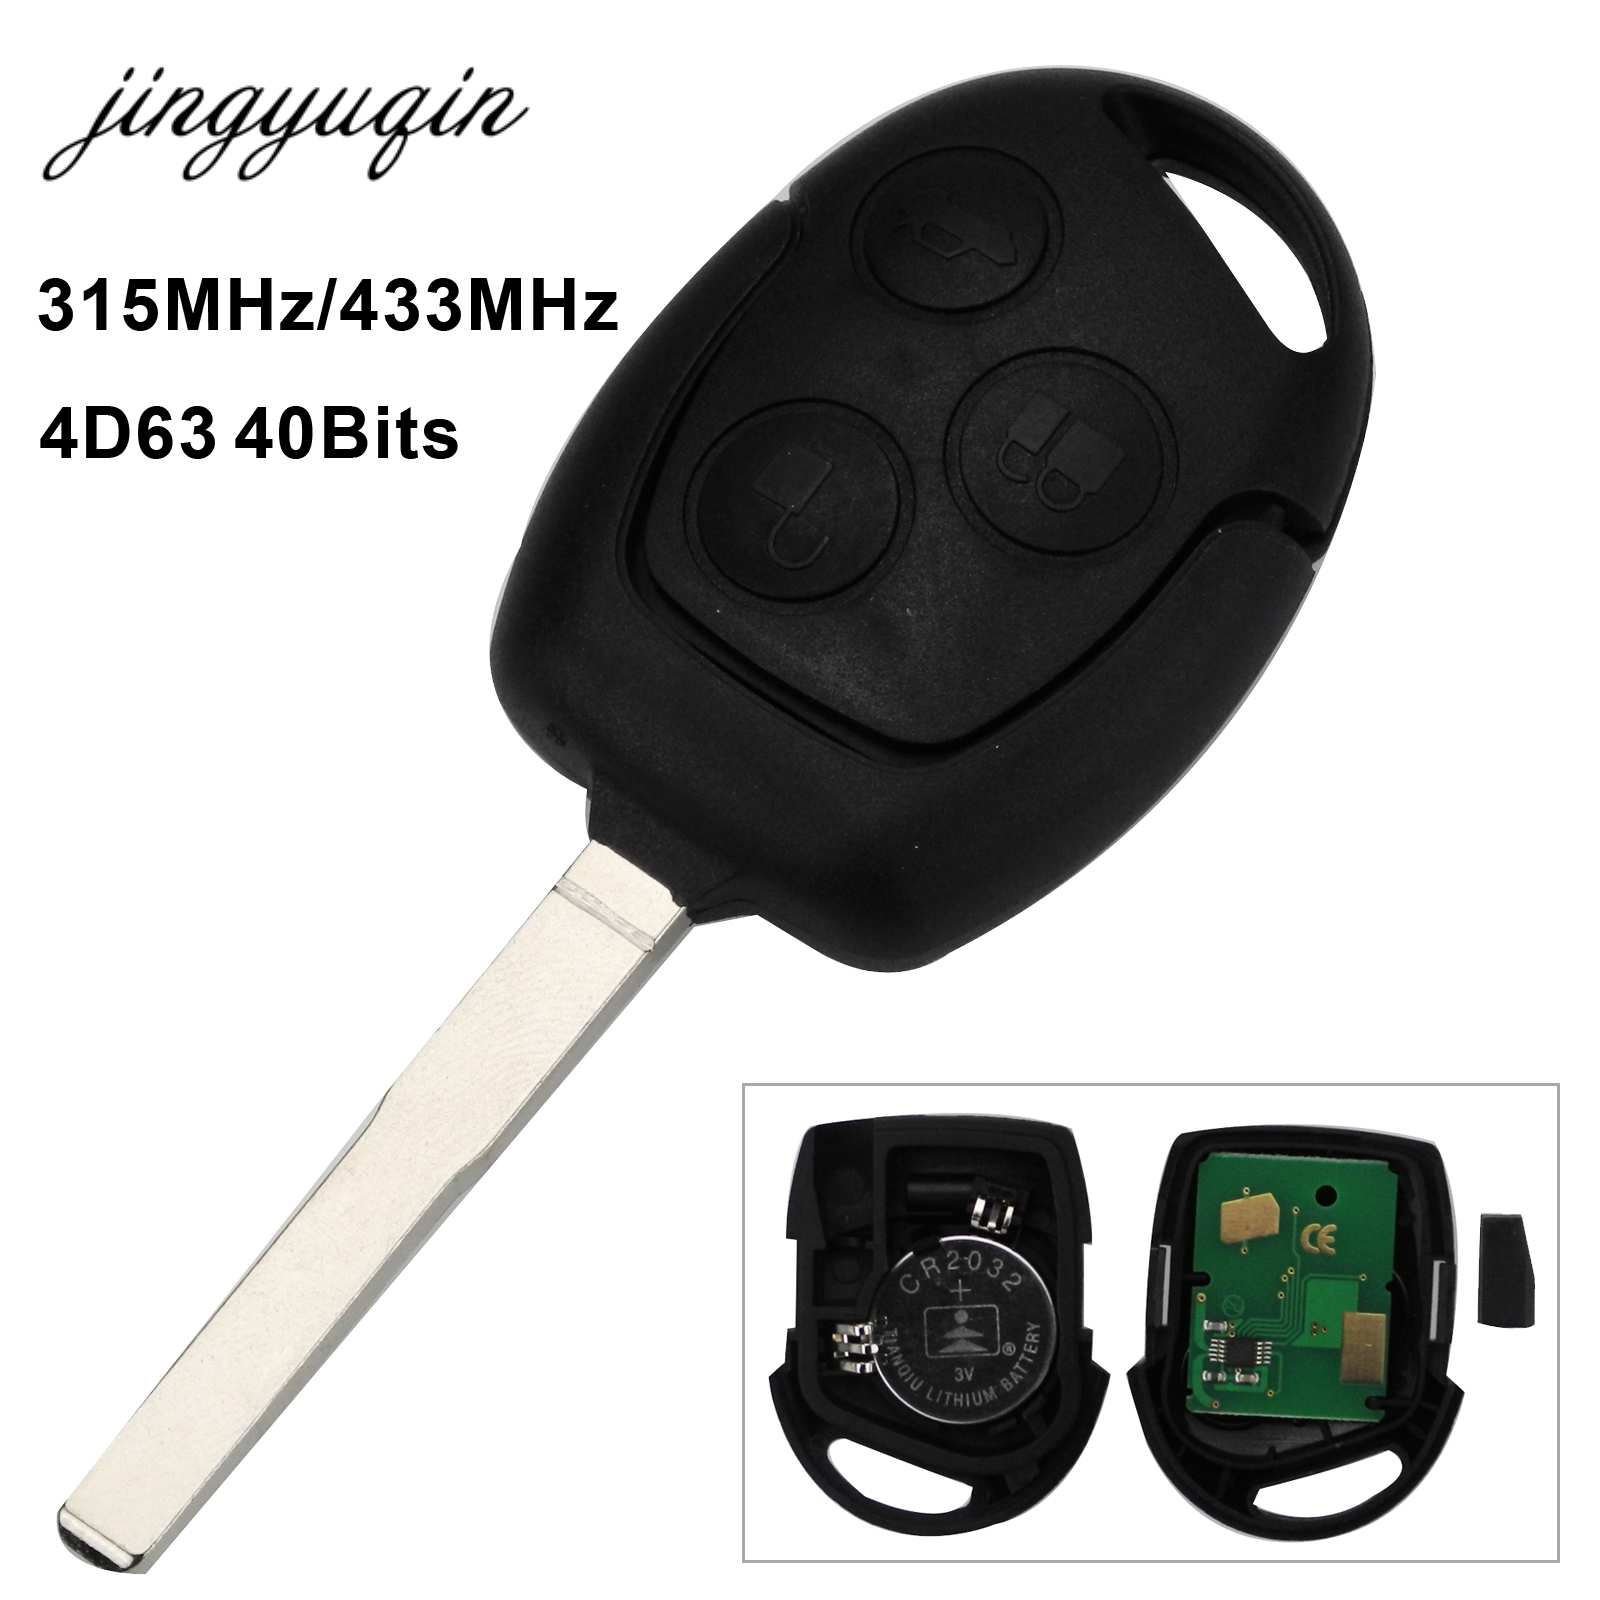 jingyuqin HU101 Blade Remote Key 3 Button 315/433MHz 4D63 Chip for Ford Focus Fiesta Mondeo Fusion Transit KA Galaxy C-Max S-Max